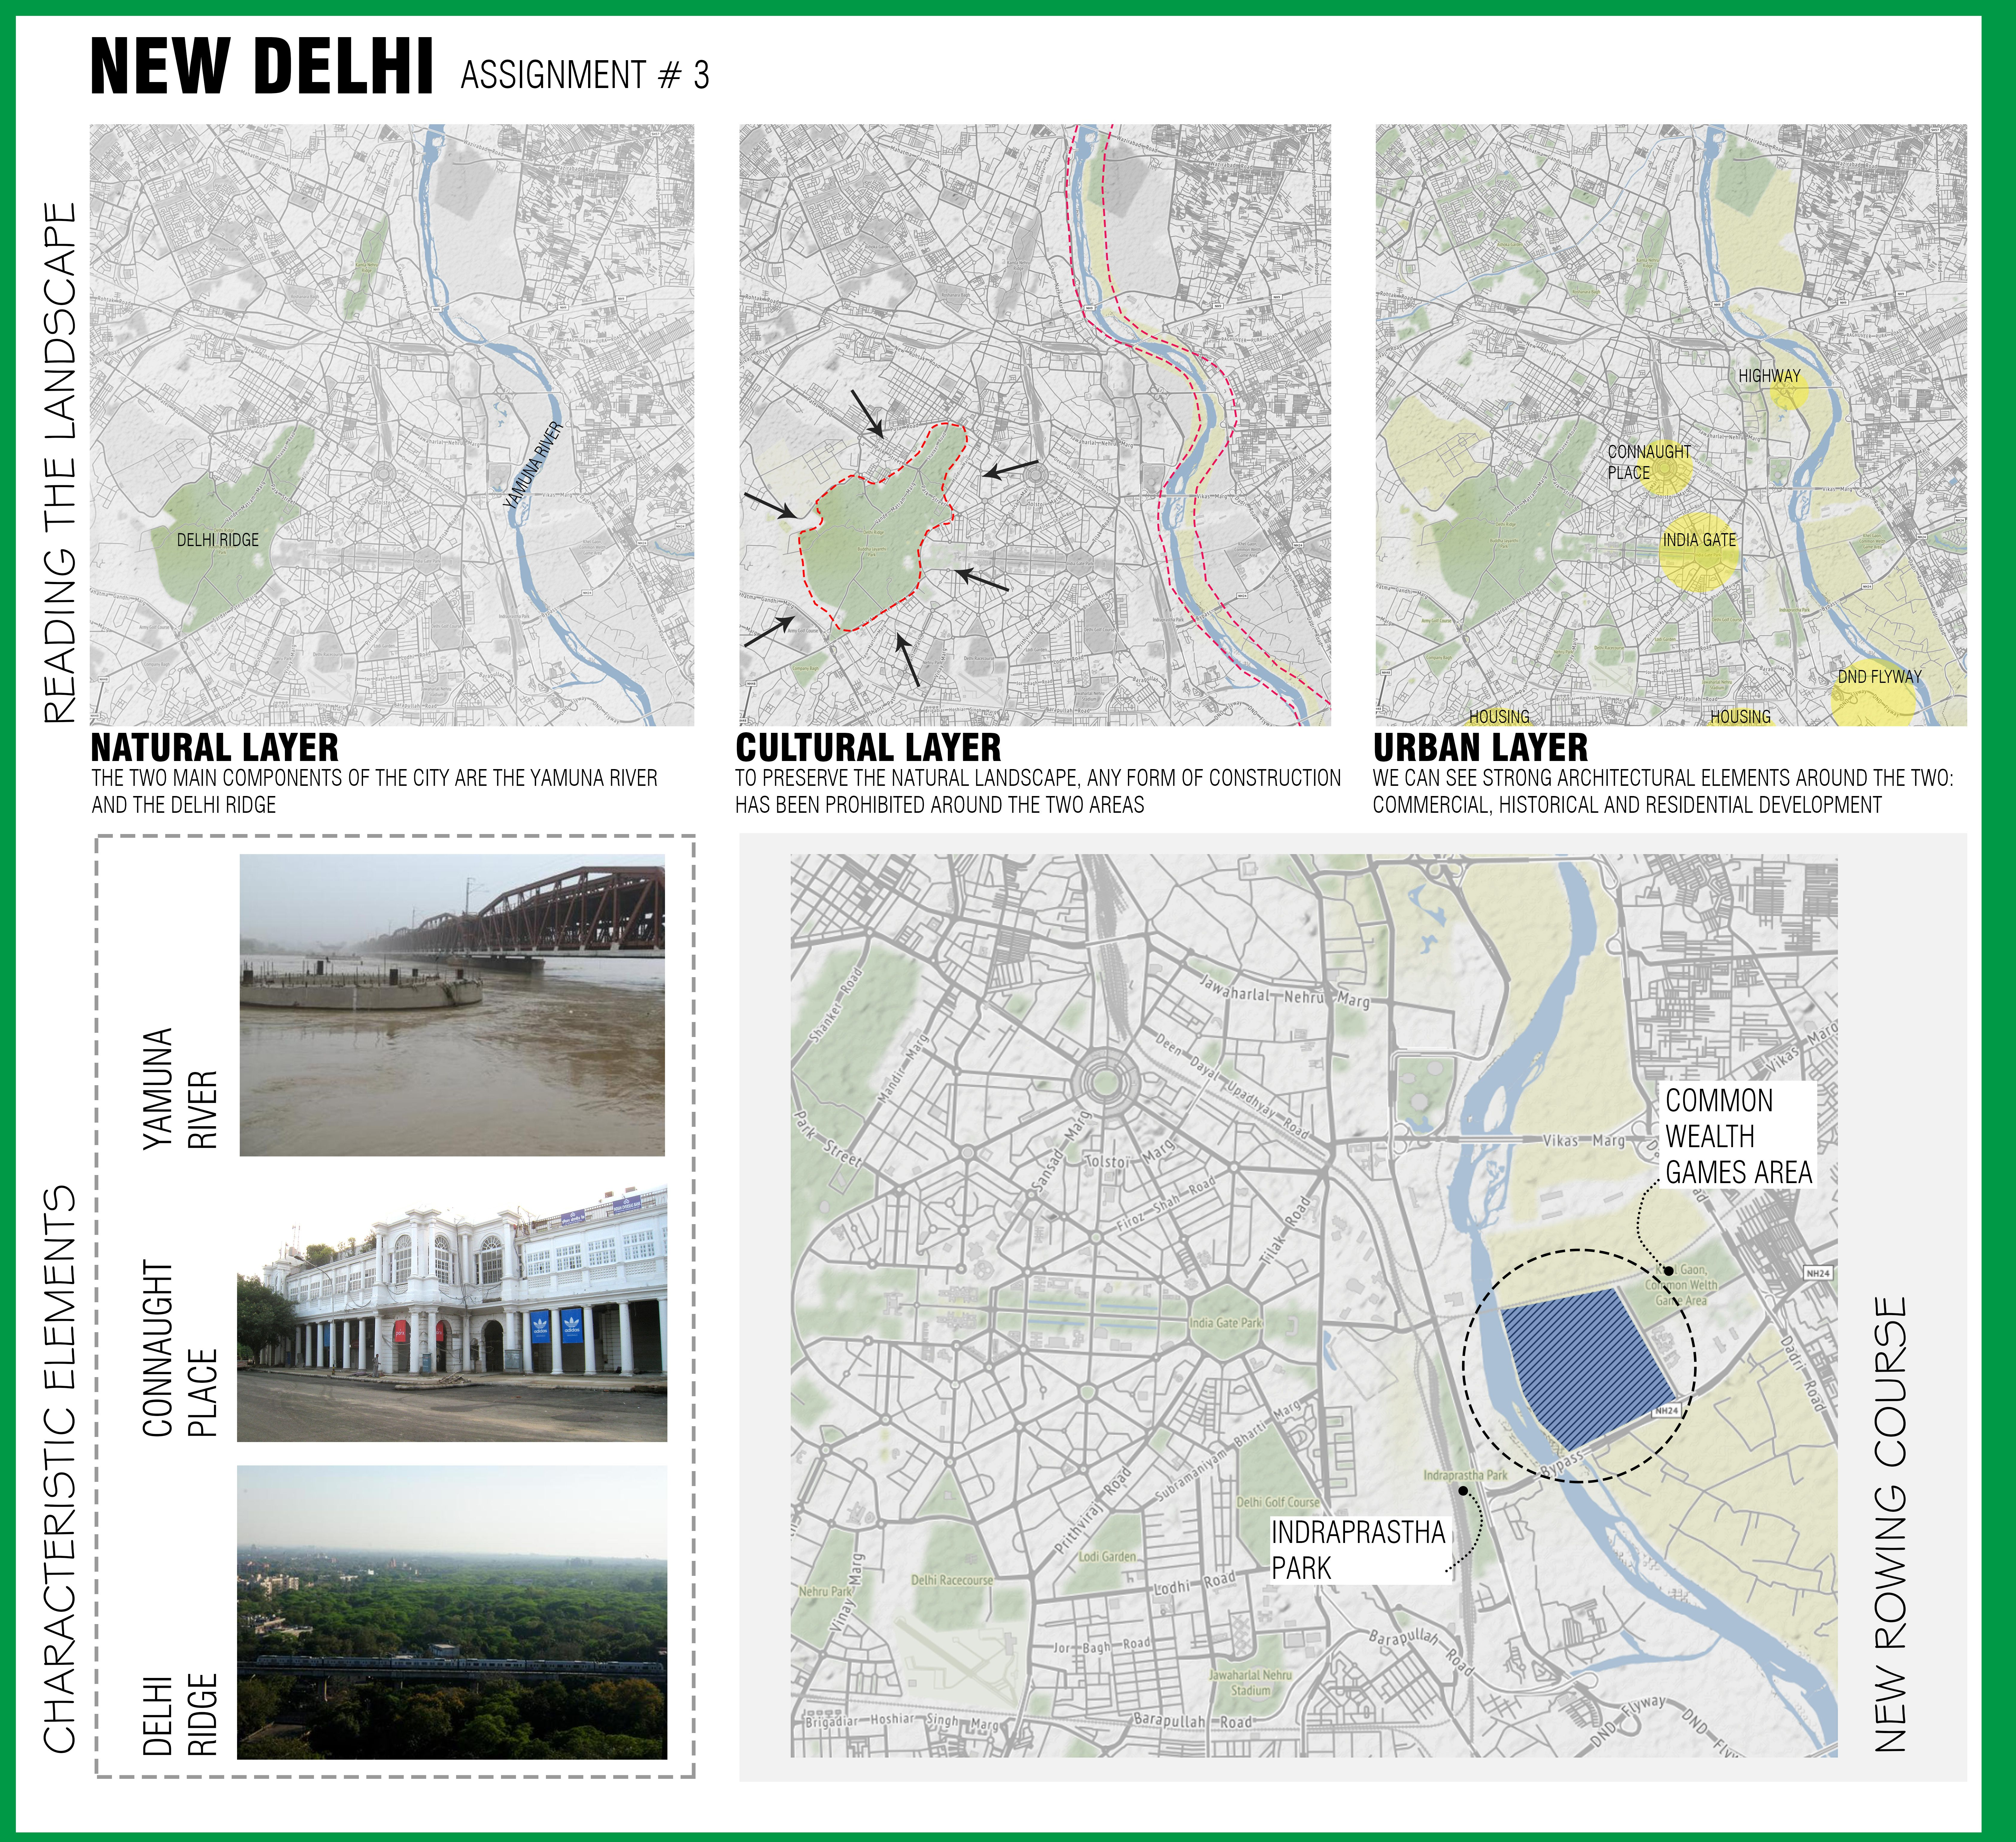 This is a study of New Delhi by reading the three layers of the area and suggesting where the new rowing course can be added.